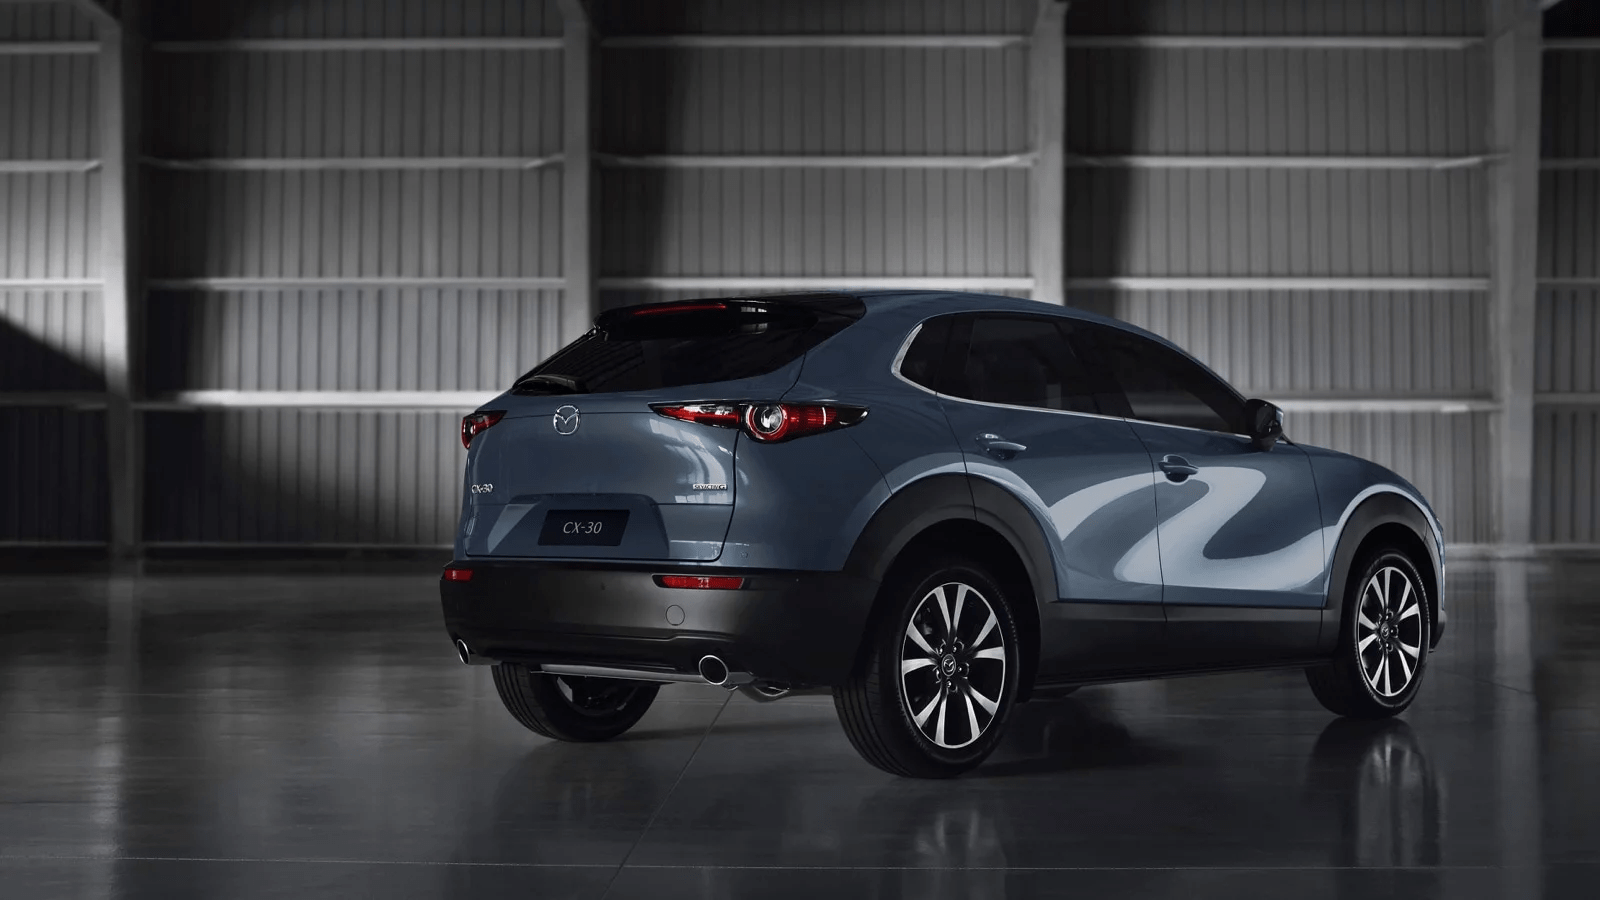 cx-30-gallery-14